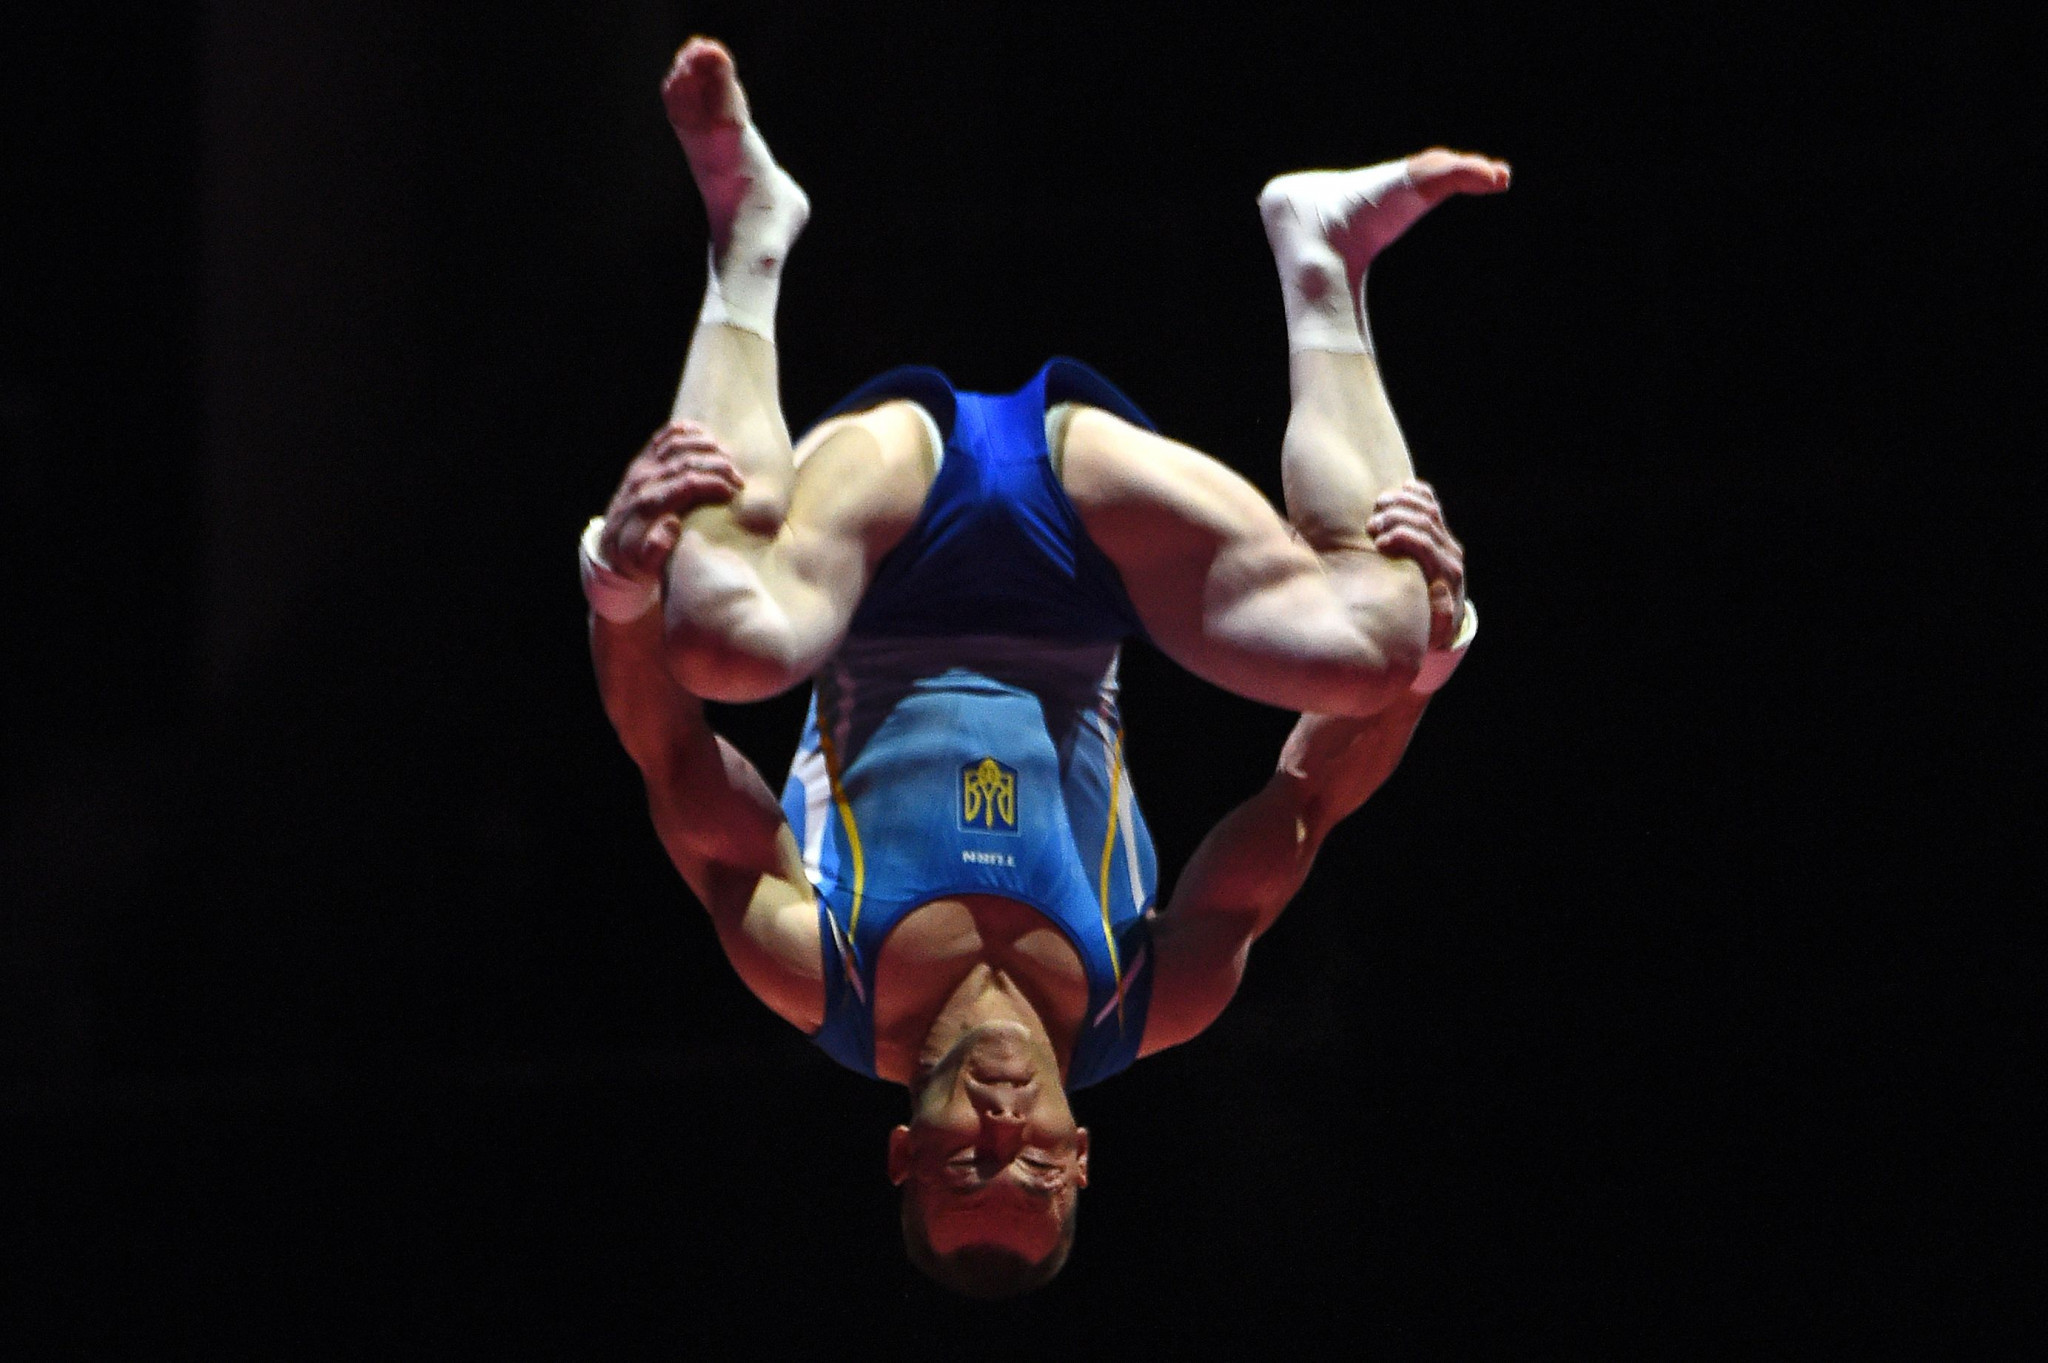 Olympic bronze medallist Igor Radivilov of Ukraine secured top spot in the men's vault qualification round ©Getty Images